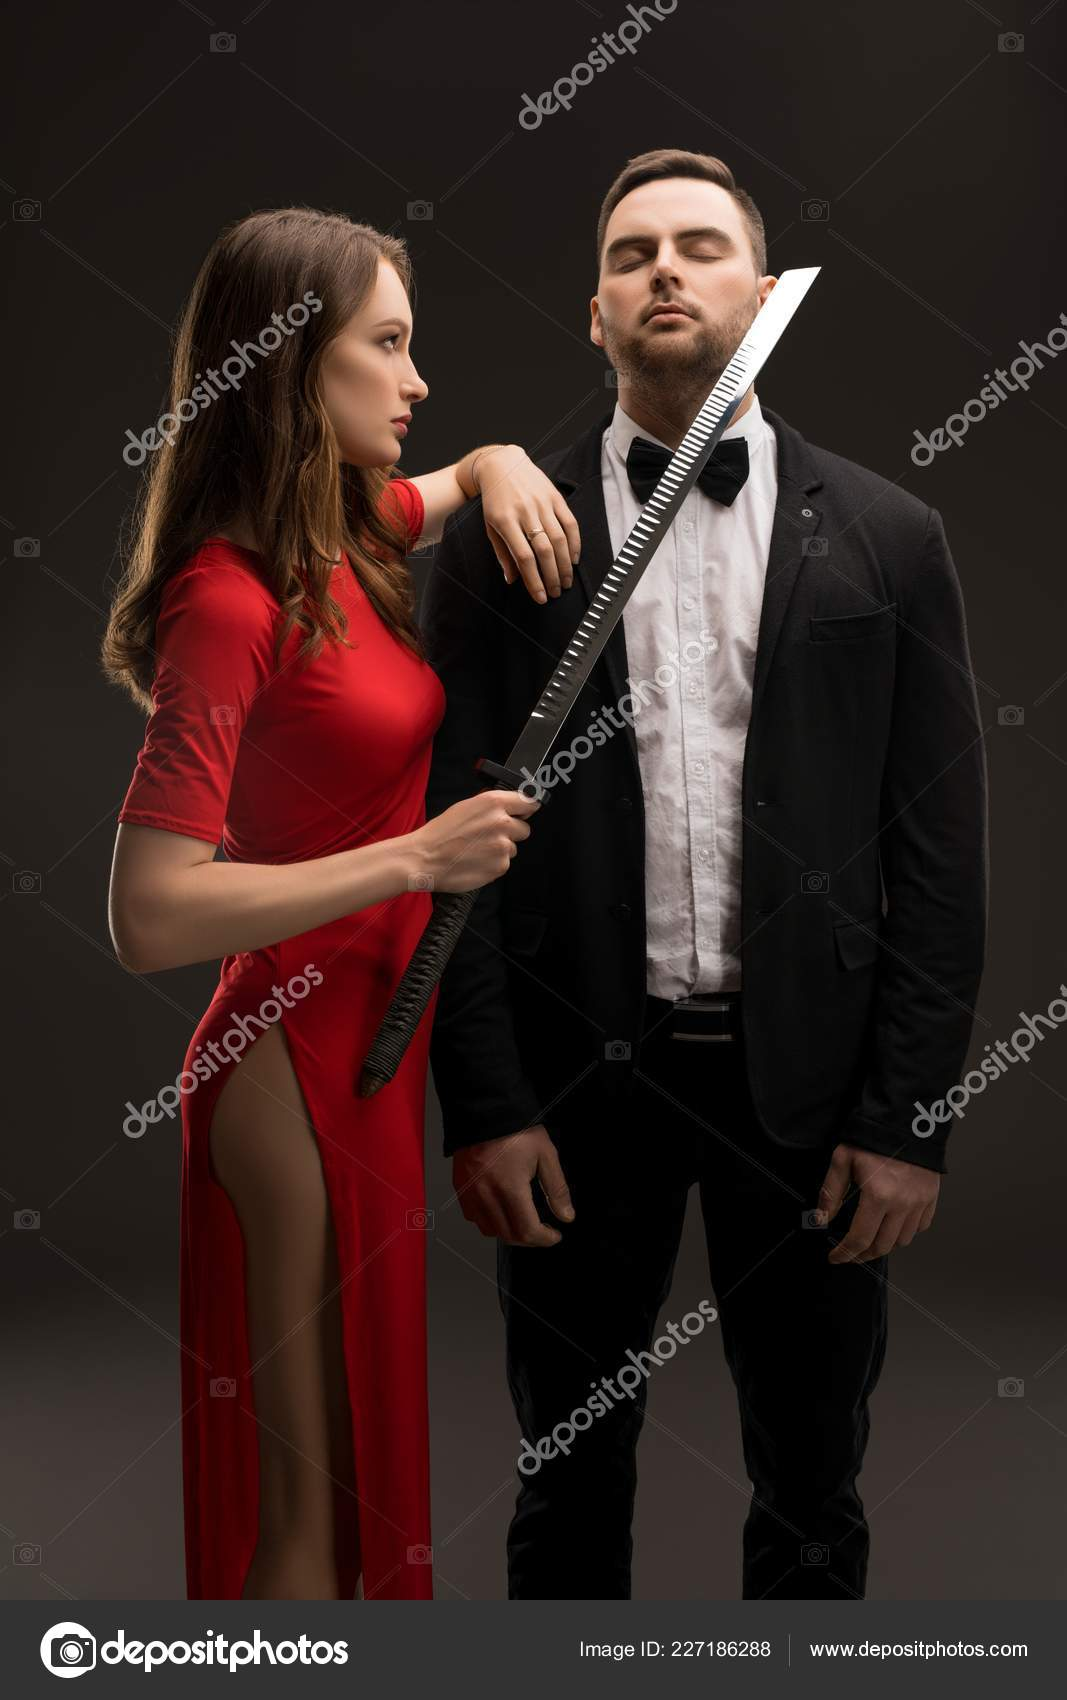 daef6c1dc4ef Beautiful girl in the evening red dress with deep cut holding a sword and  handsome man wearing white shirt, bow tie and costume full-length shot —  Photo by ...